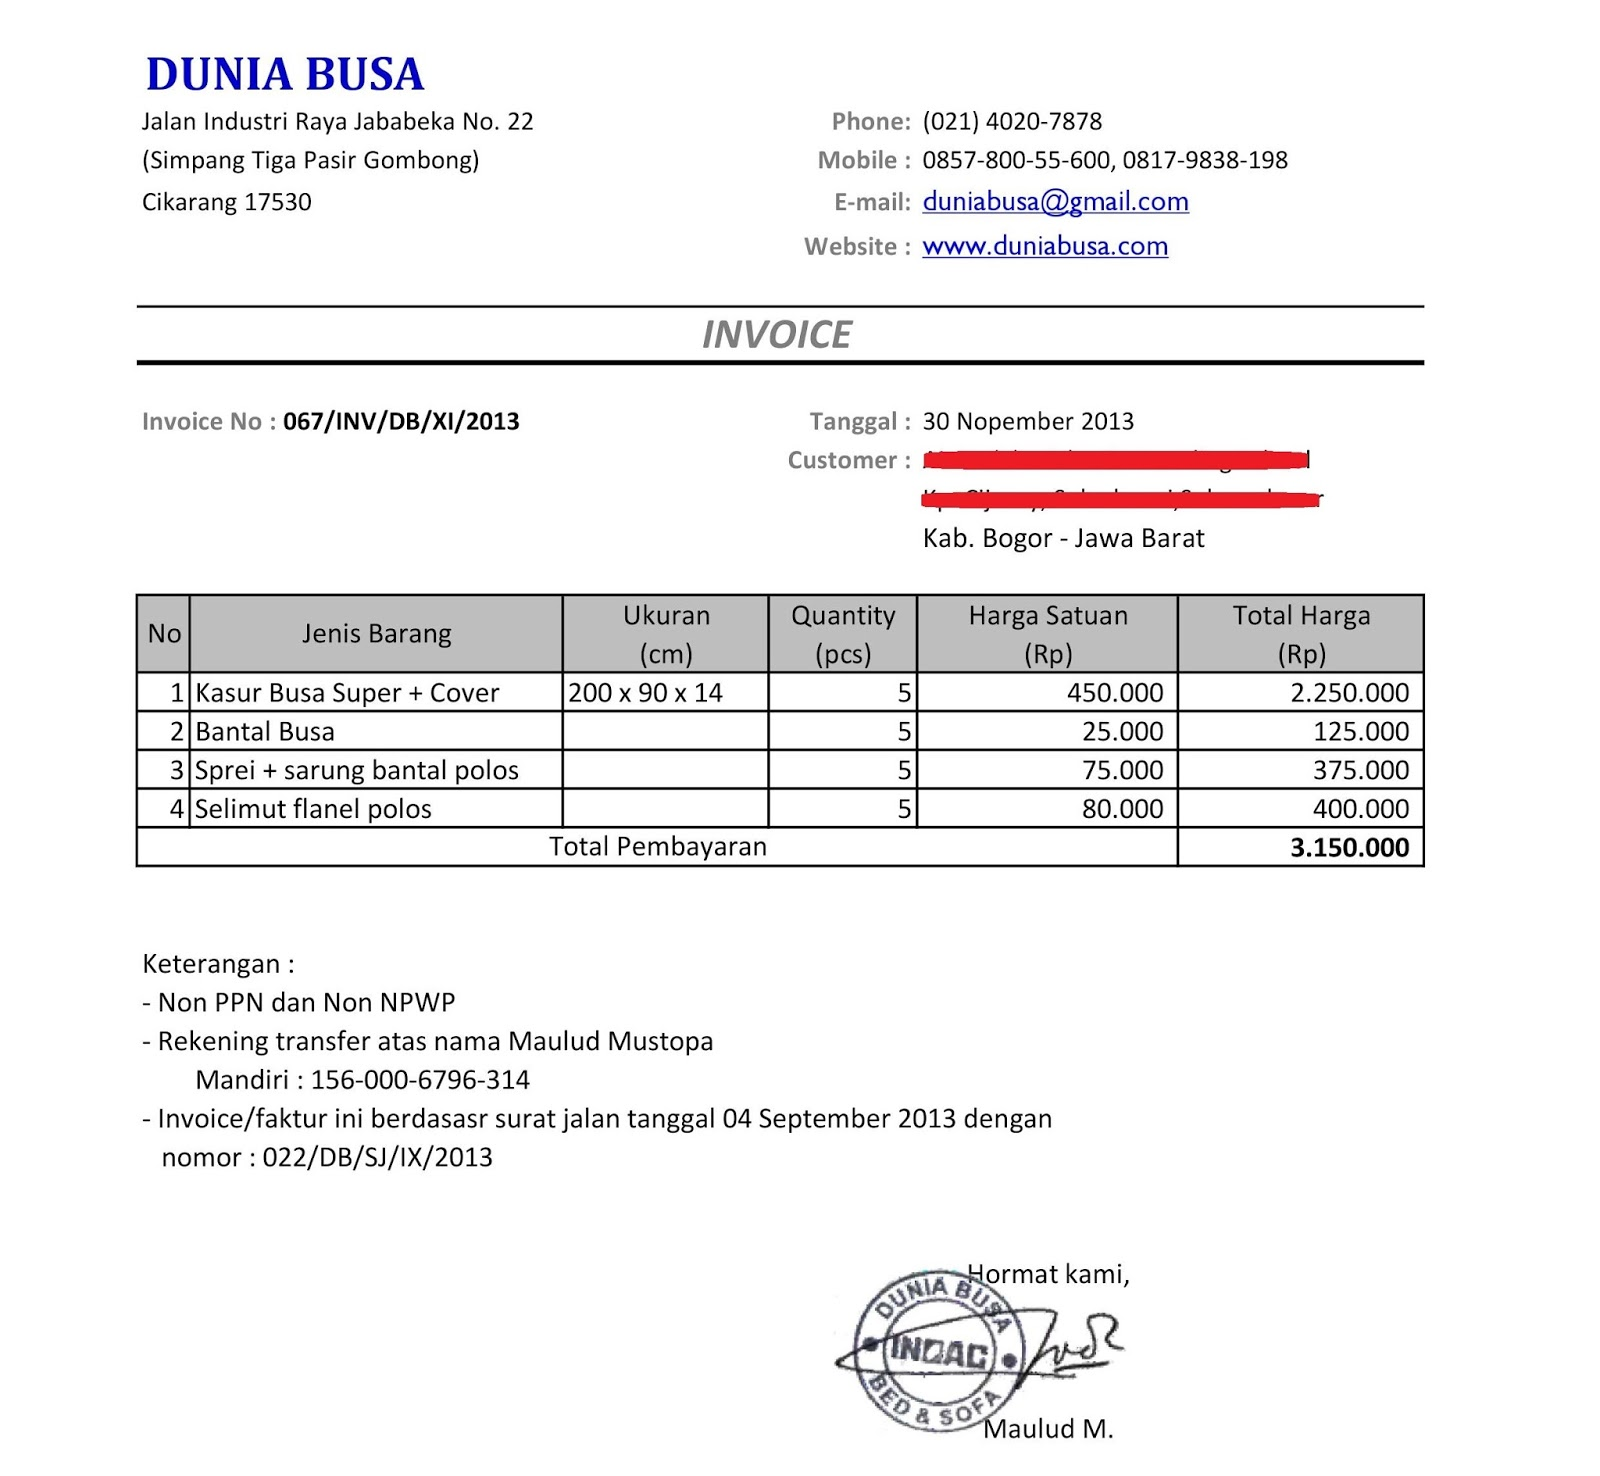 Garygrubbsus  Seductive Free Invoice Online  Create Invoice Online  Invoice Template  With Engaging Contoh Format Invoice Atau Surat Tagihan  Brankas Arsip  Free Invoice Online With Appealing Ms Excel Invoice Template Also Dealers Invoice In Addition Invoice Template Excel Mac And Makeup Artist Invoice Template As Well As Scan Invoices Into Quickbooks Additionally Sample Invoice Template Excel From Sklepco With Garygrubbsus  Engaging Free Invoice Online  Create Invoice Online  Invoice Template  With Appealing Contoh Format Invoice Atau Surat Tagihan  Brankas Arsip  Free Invoice Online And Seductive Ms Excel Invoice Template Also Dealers Invoice In Addition Invoice Template Excel Mac From Sklepco